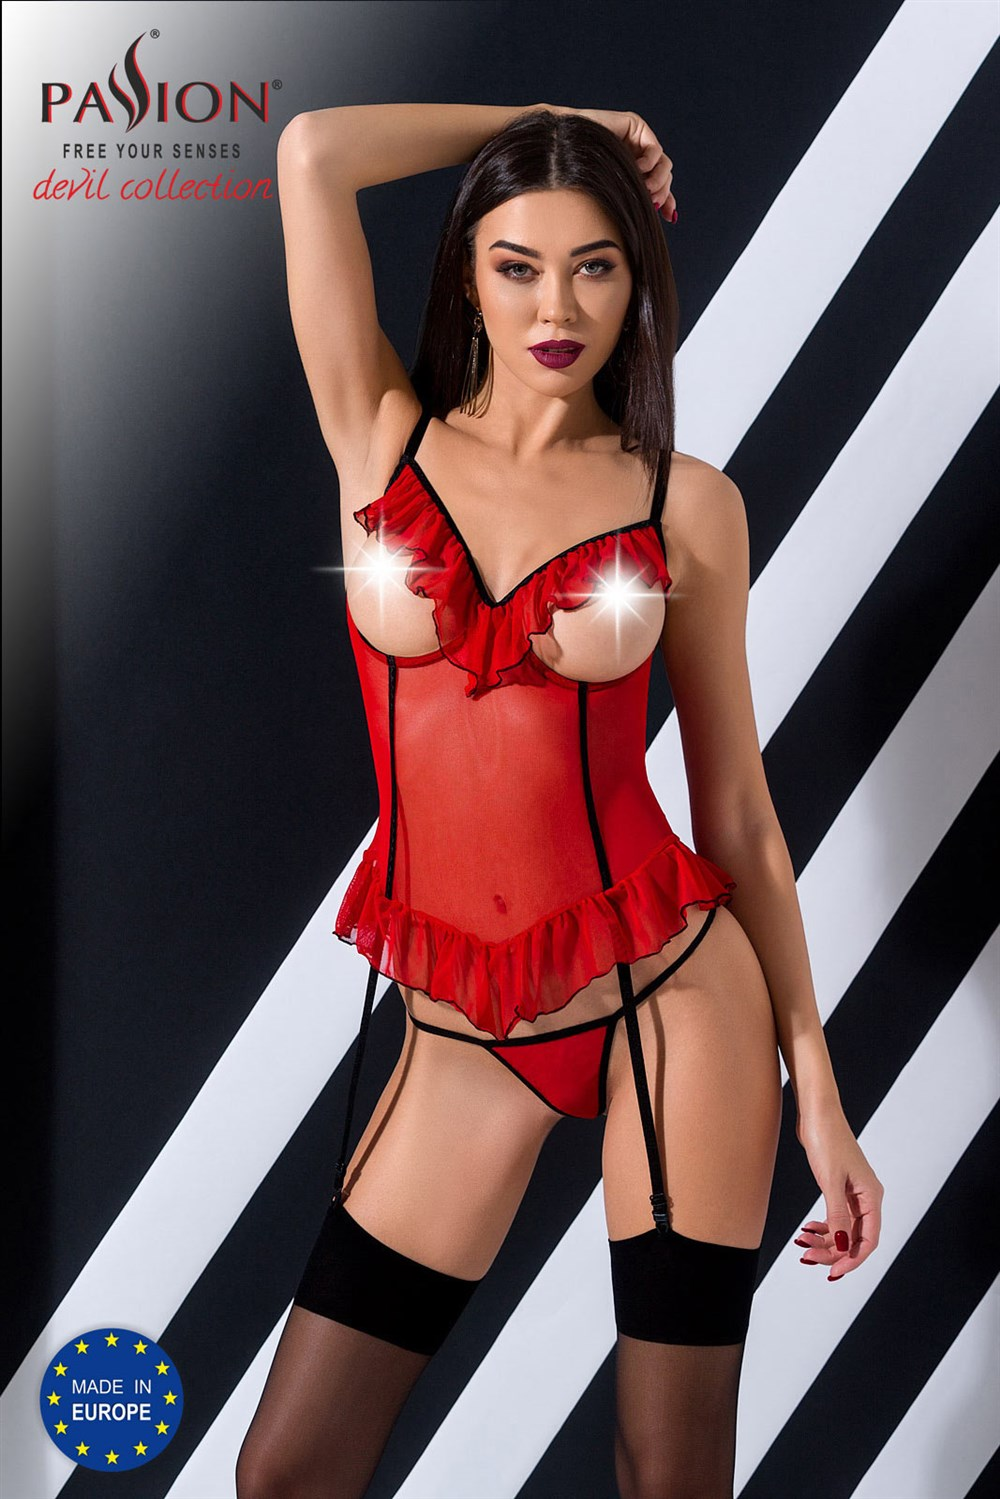 Passion Cherry Corset red